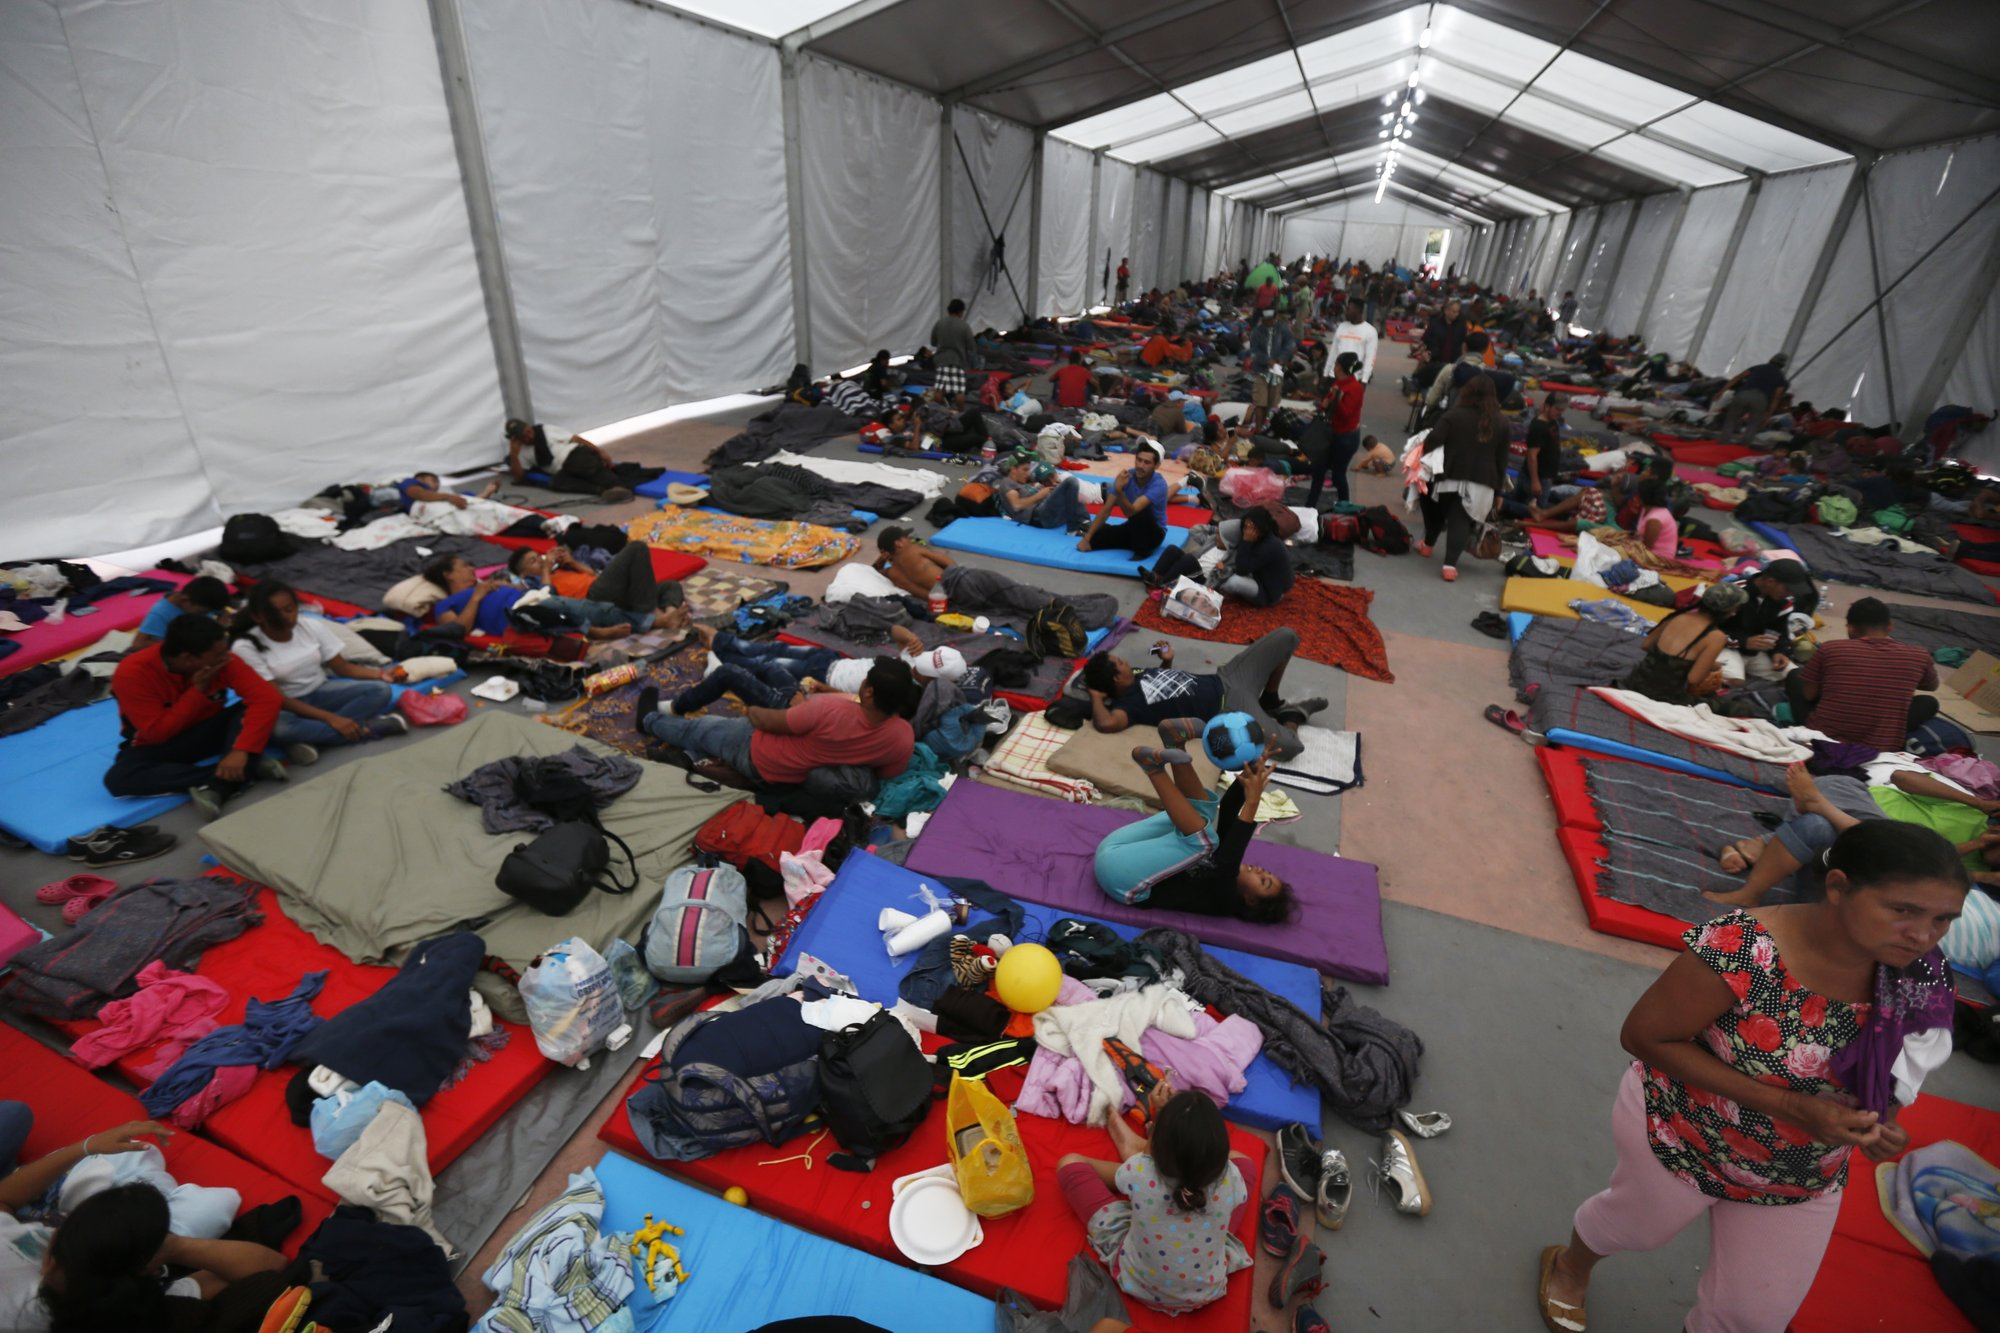 Migrants straggle into Mexico City to shelter at stadium